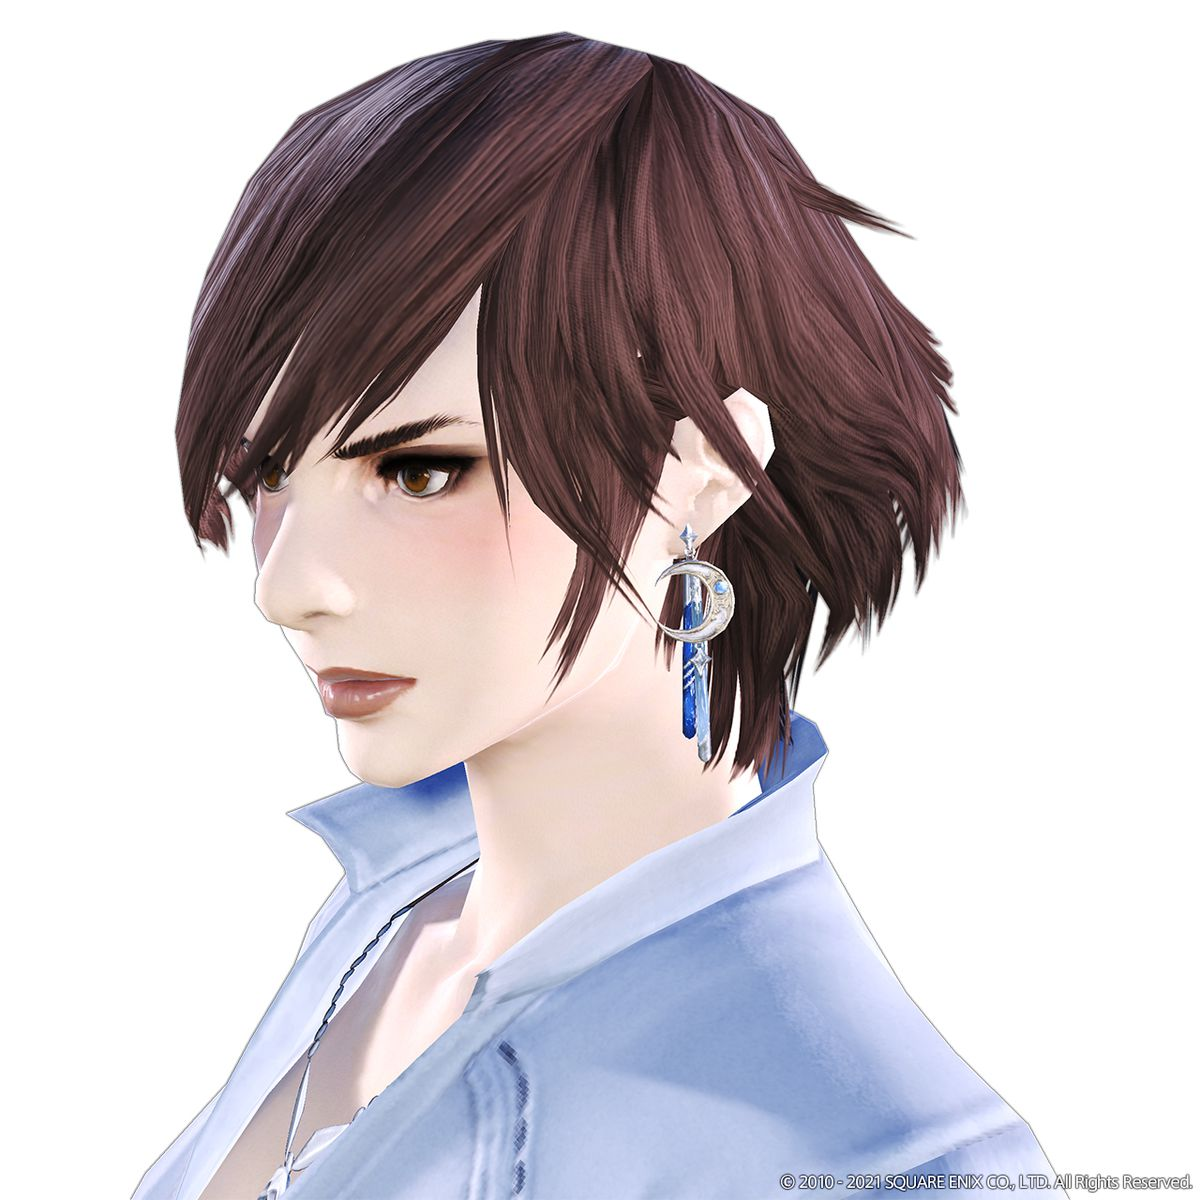 The Menphina Earring modeled by a female character. The earring is a silver moon with blue crystals.